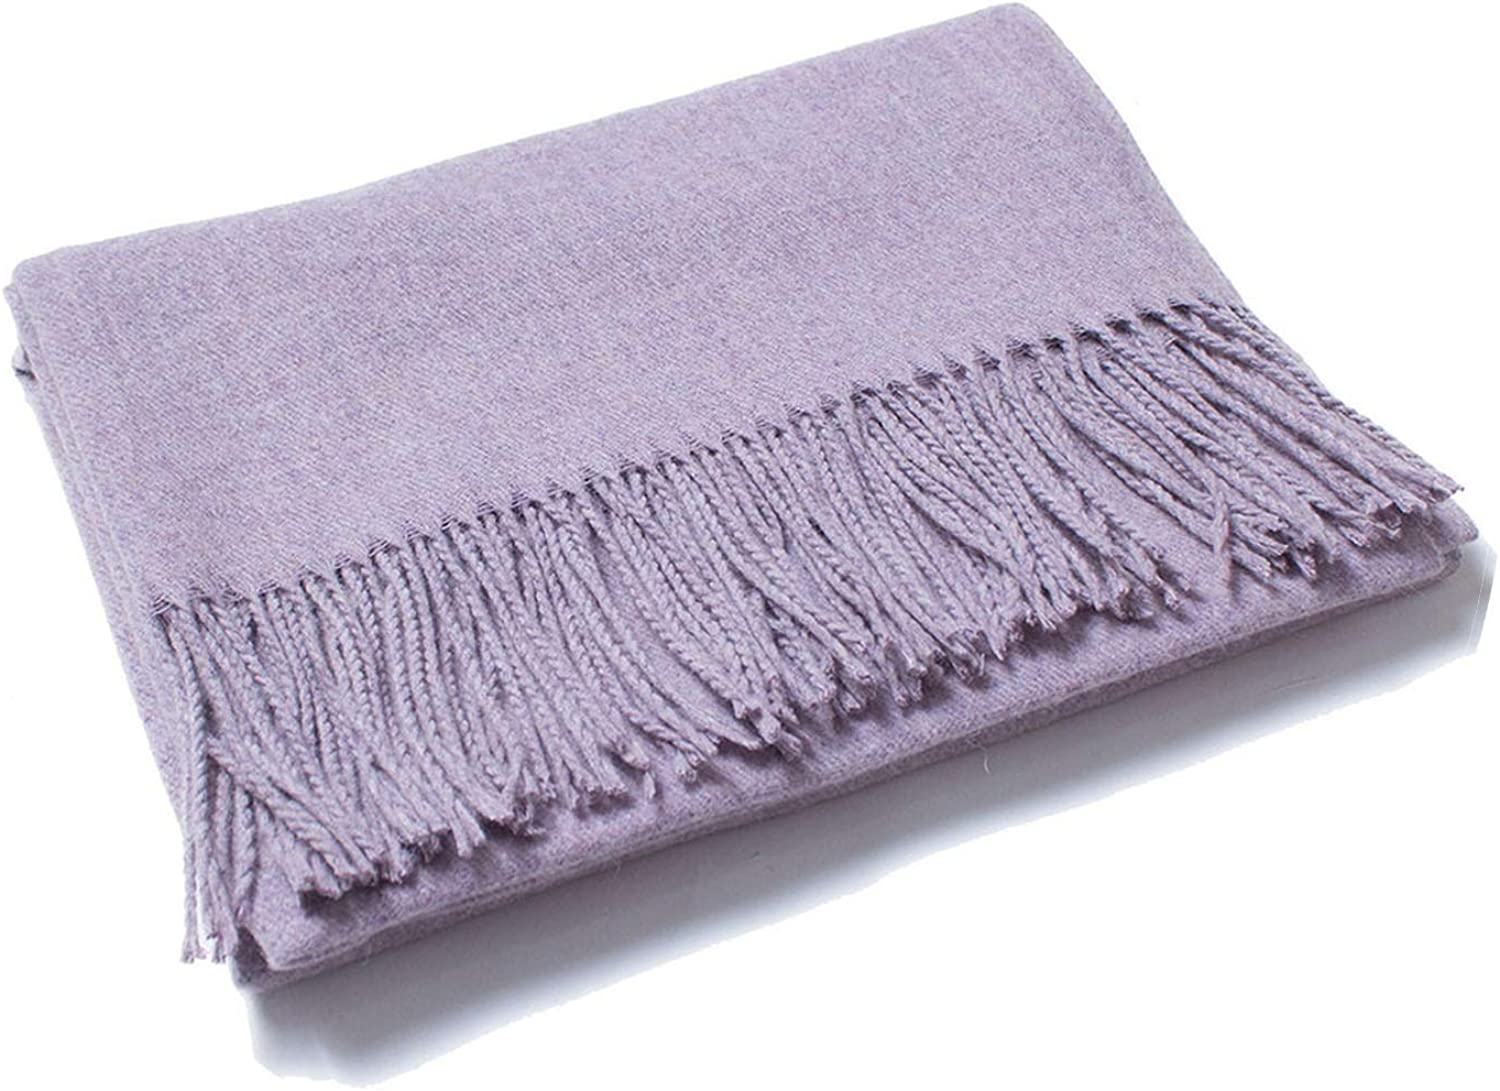 Winter scarf 100/% wool cashmere women scarf fashion and wraps gray scarf